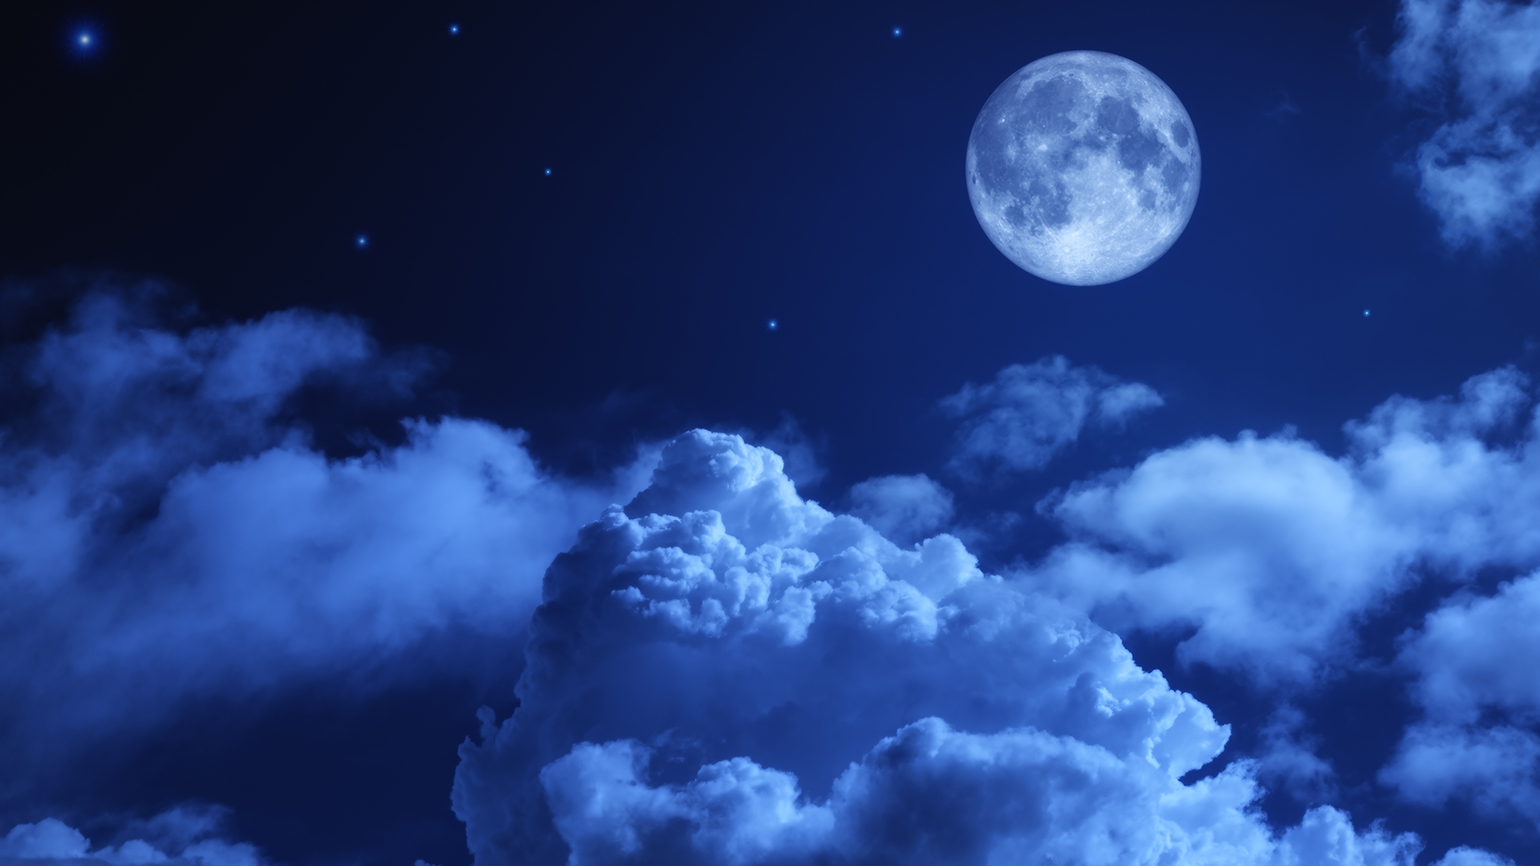 The moon surrounded by clouds